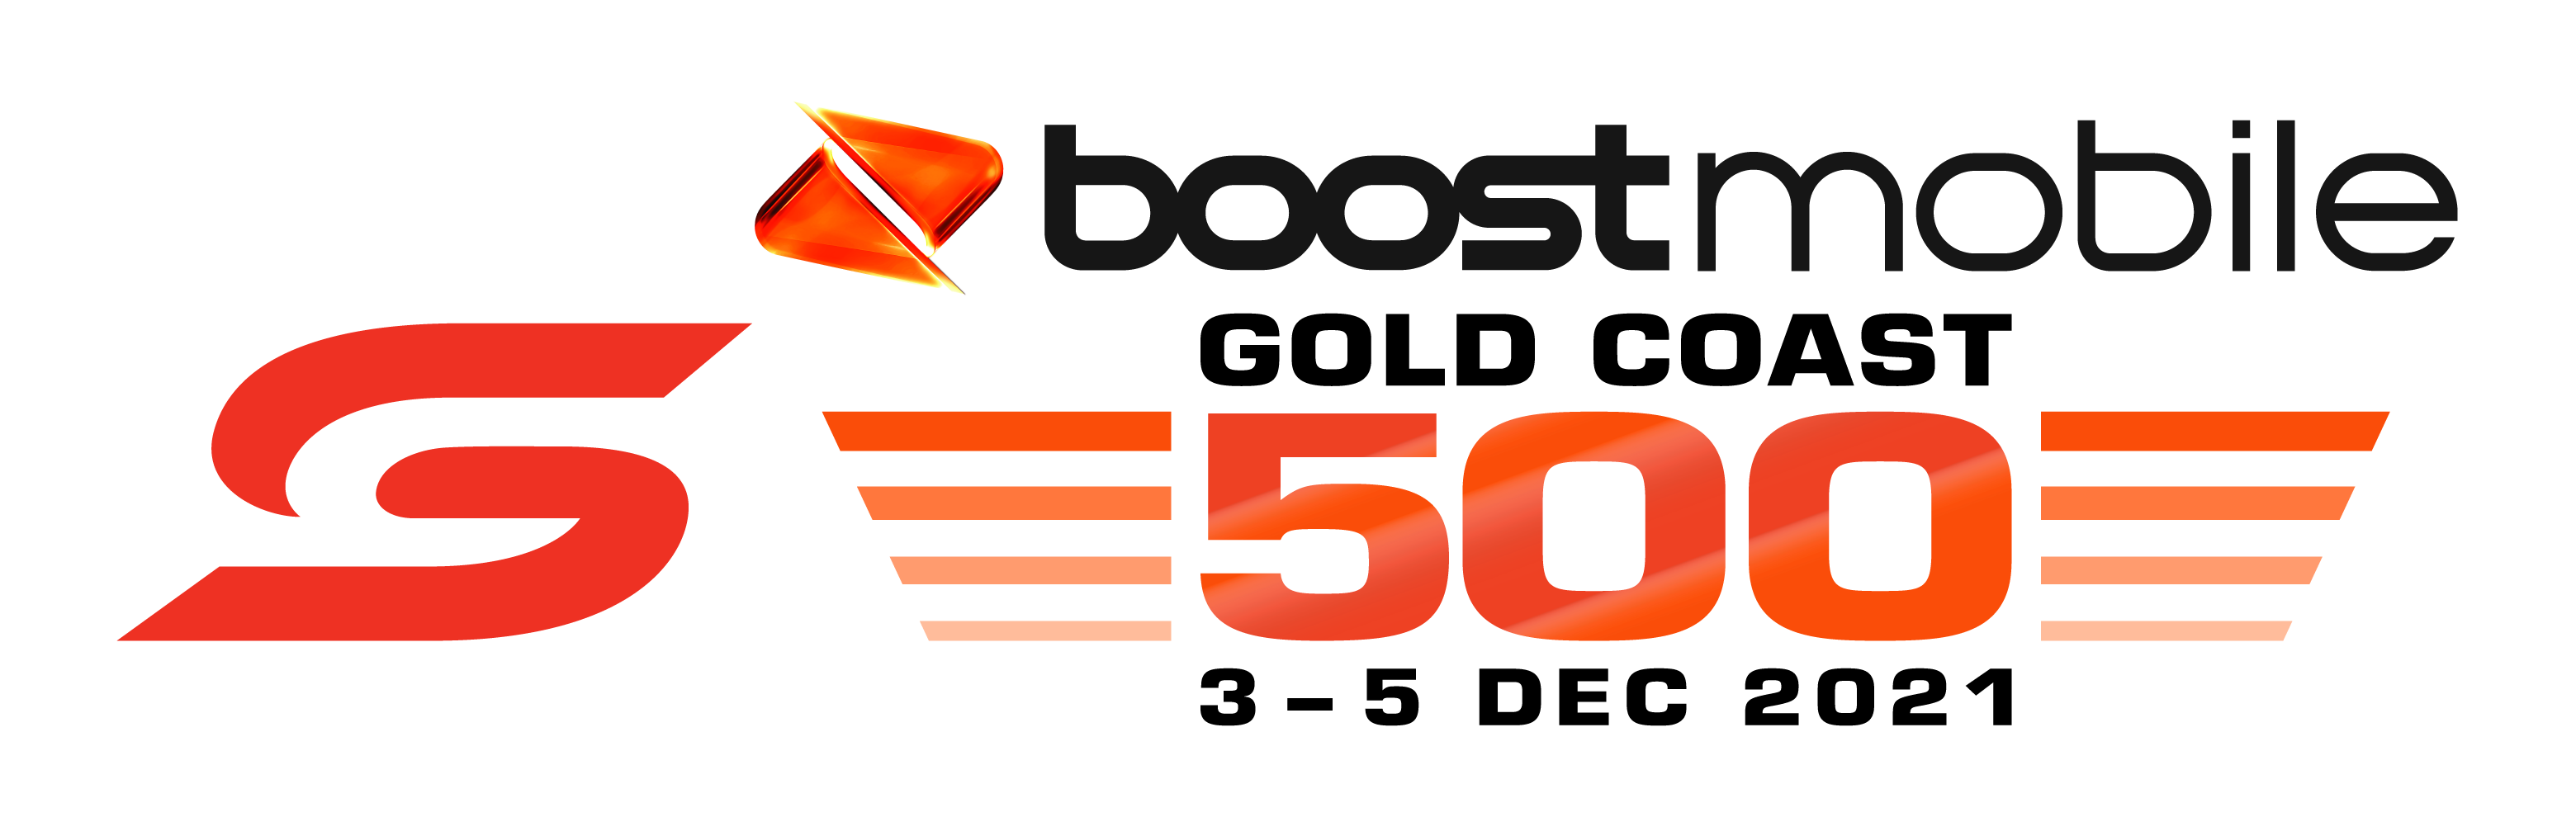 V8 Supercars - Boost Mobile Gold Coast 500 logo